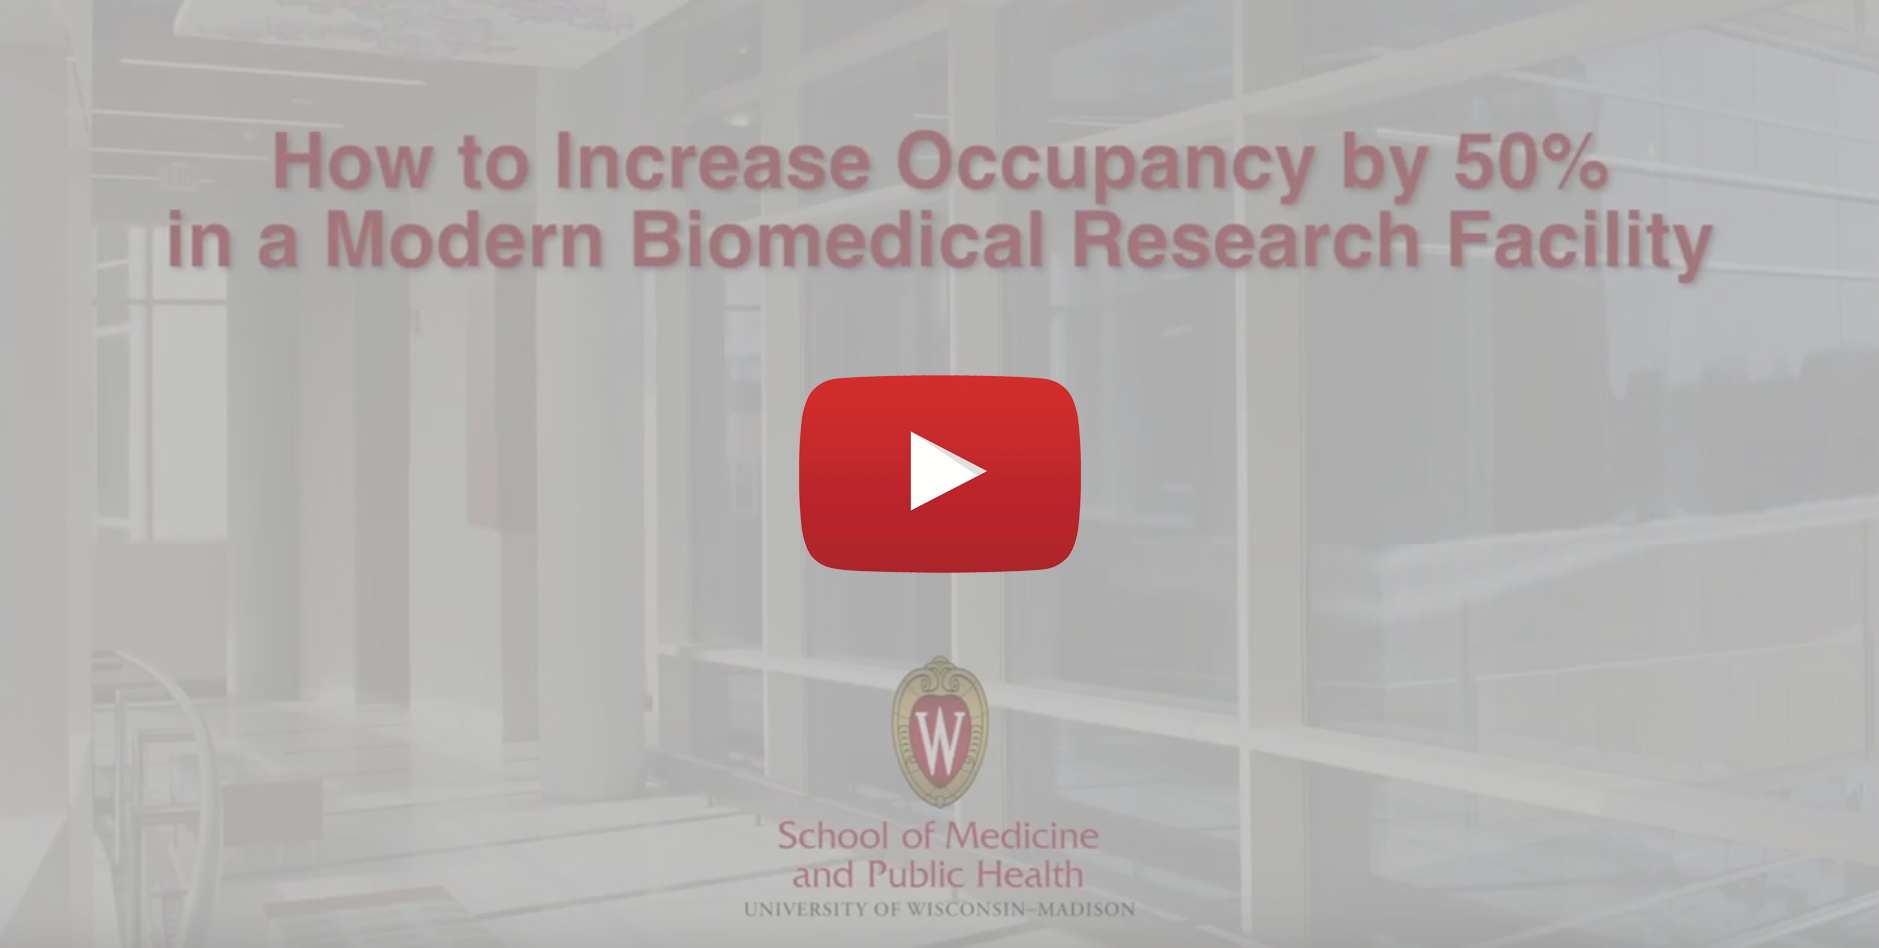 How to Increase Occupancy by 50% in a Modern Biomedical Research Facility